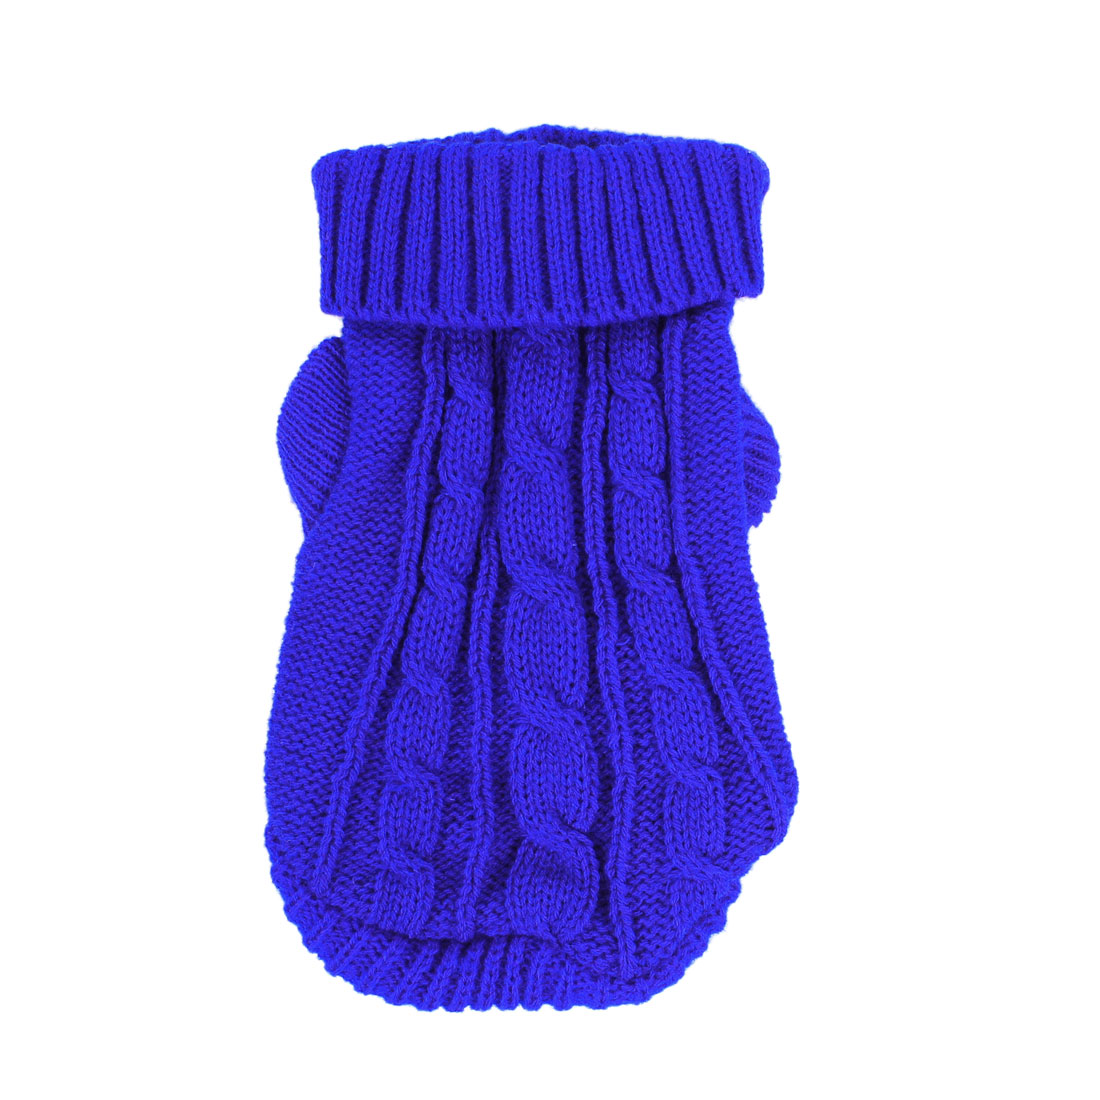 Pet Dog Maltese Twisted Knit Ribbed Cuff Turtleneck Apparel Sweater Royal Blue Size XXS